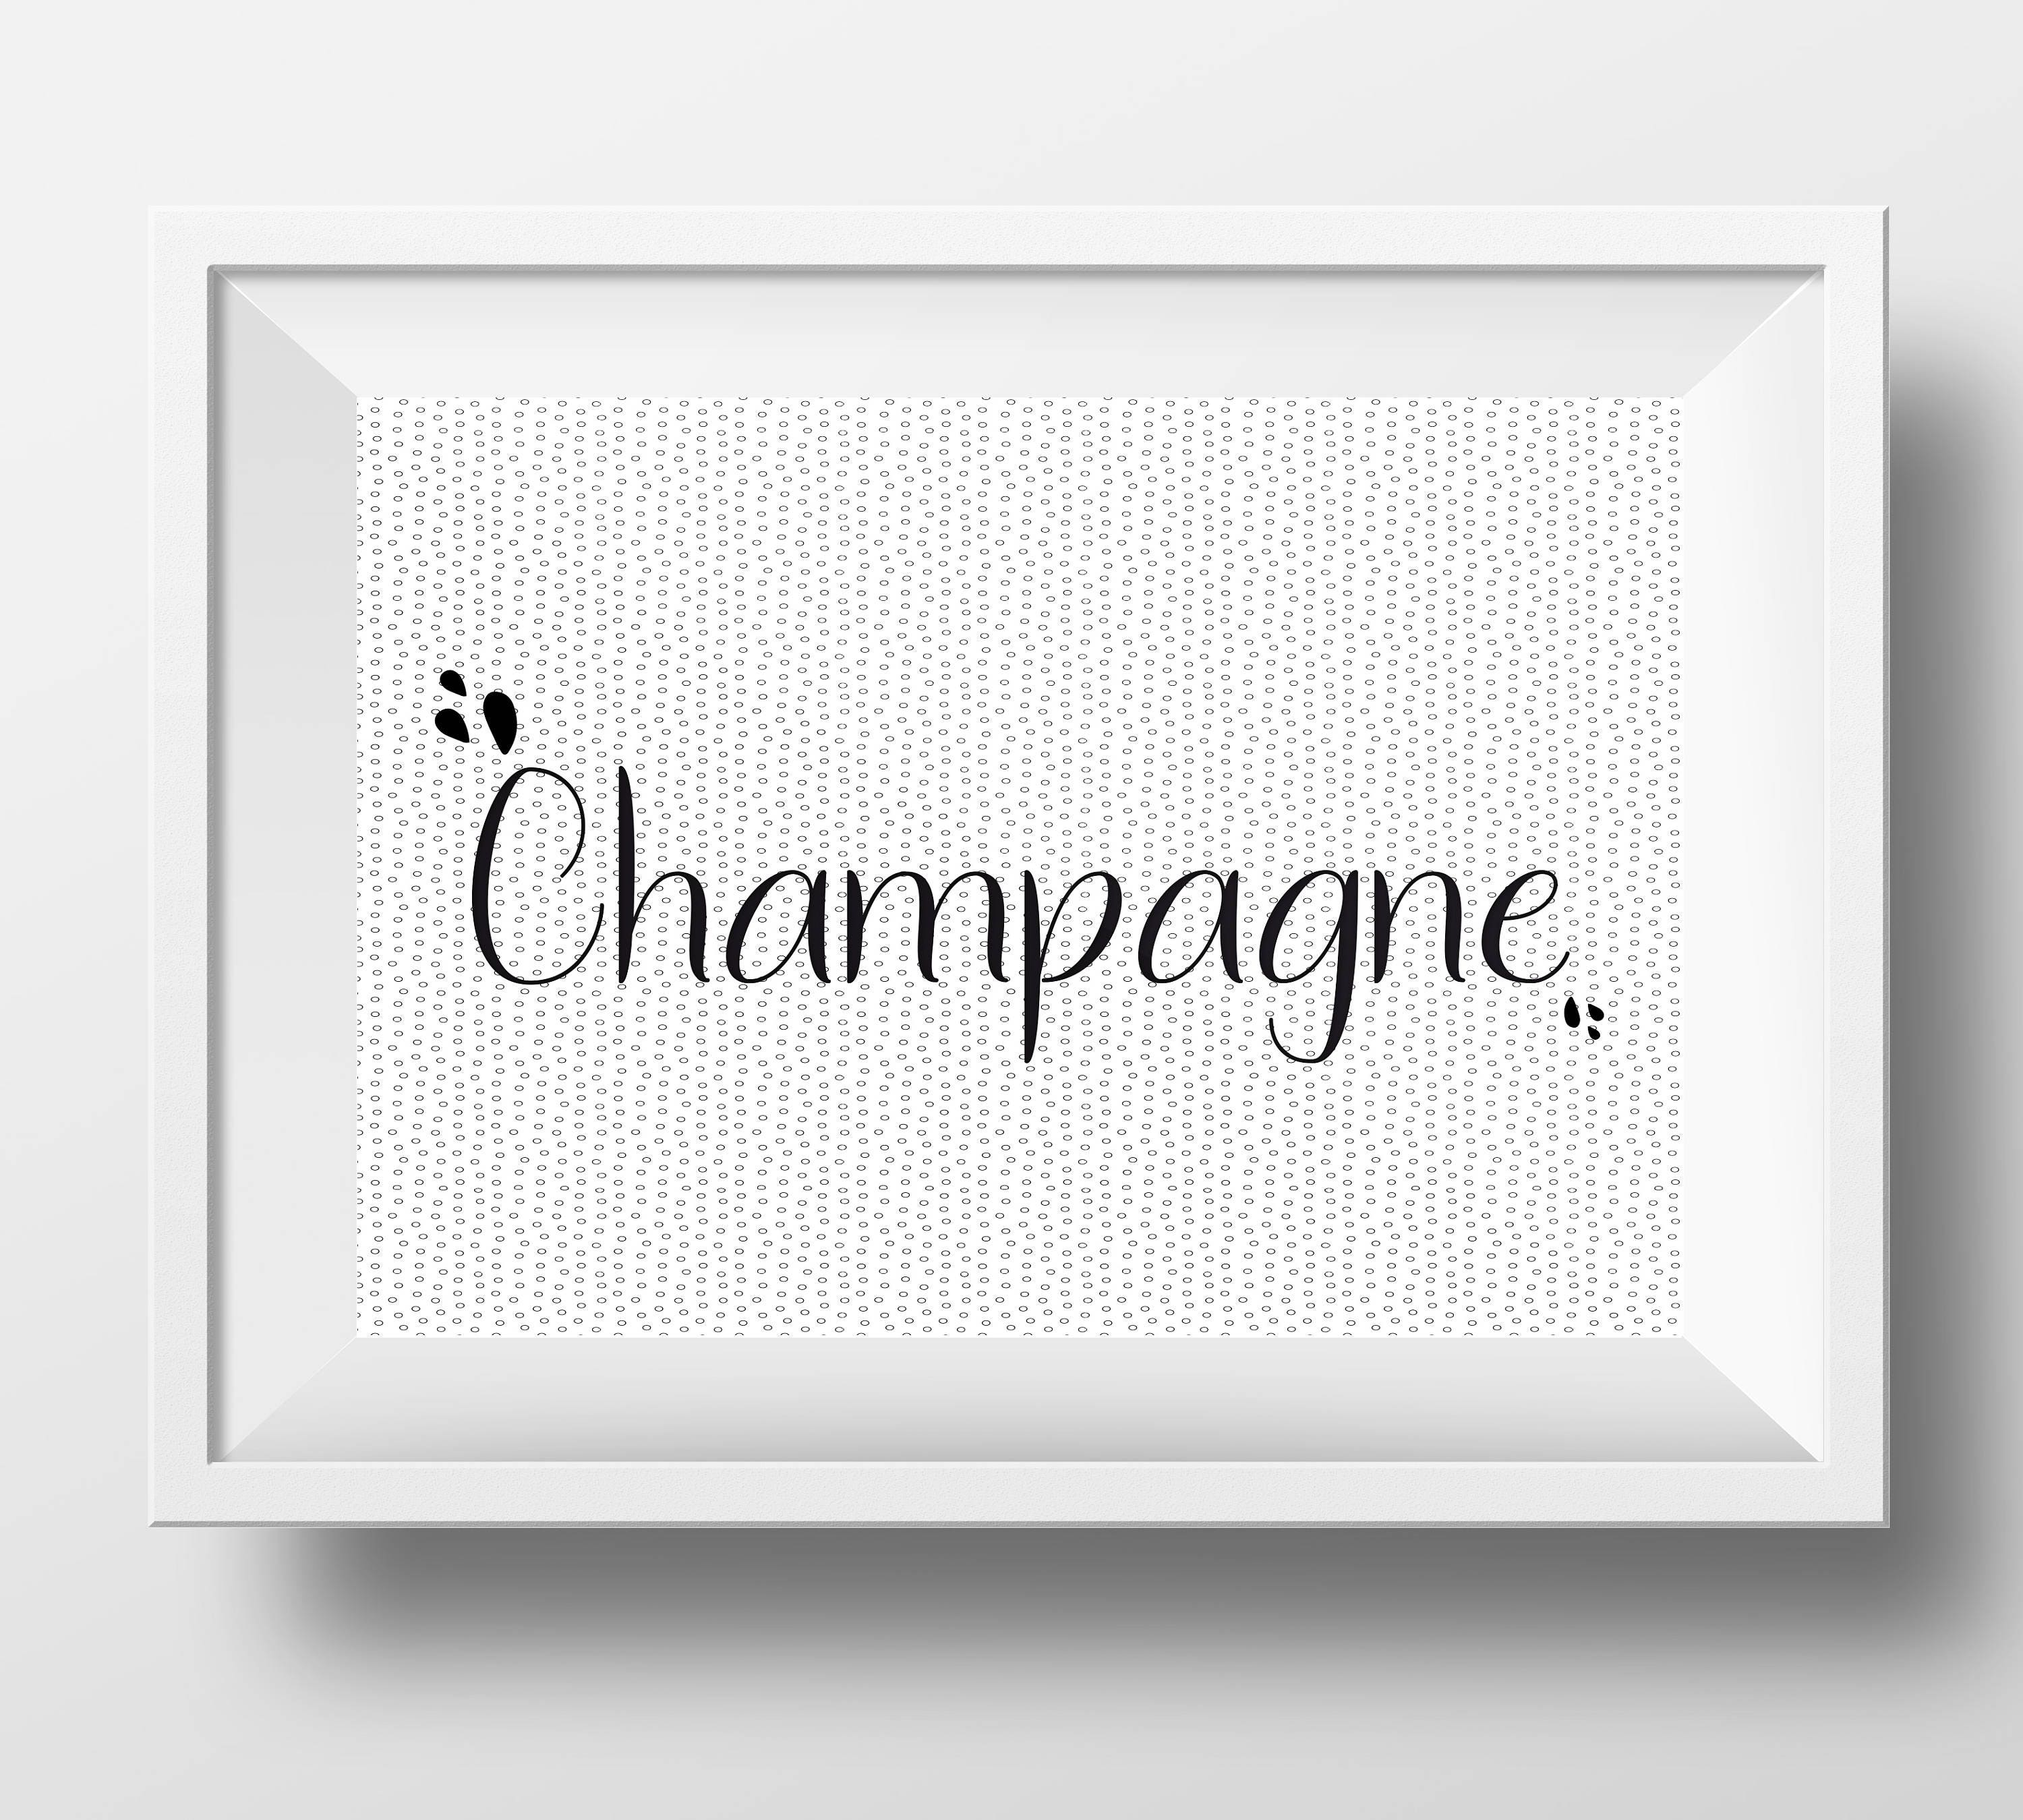 Champagne Postcard   Black And White   Home Decor   Gift Idea   French Word